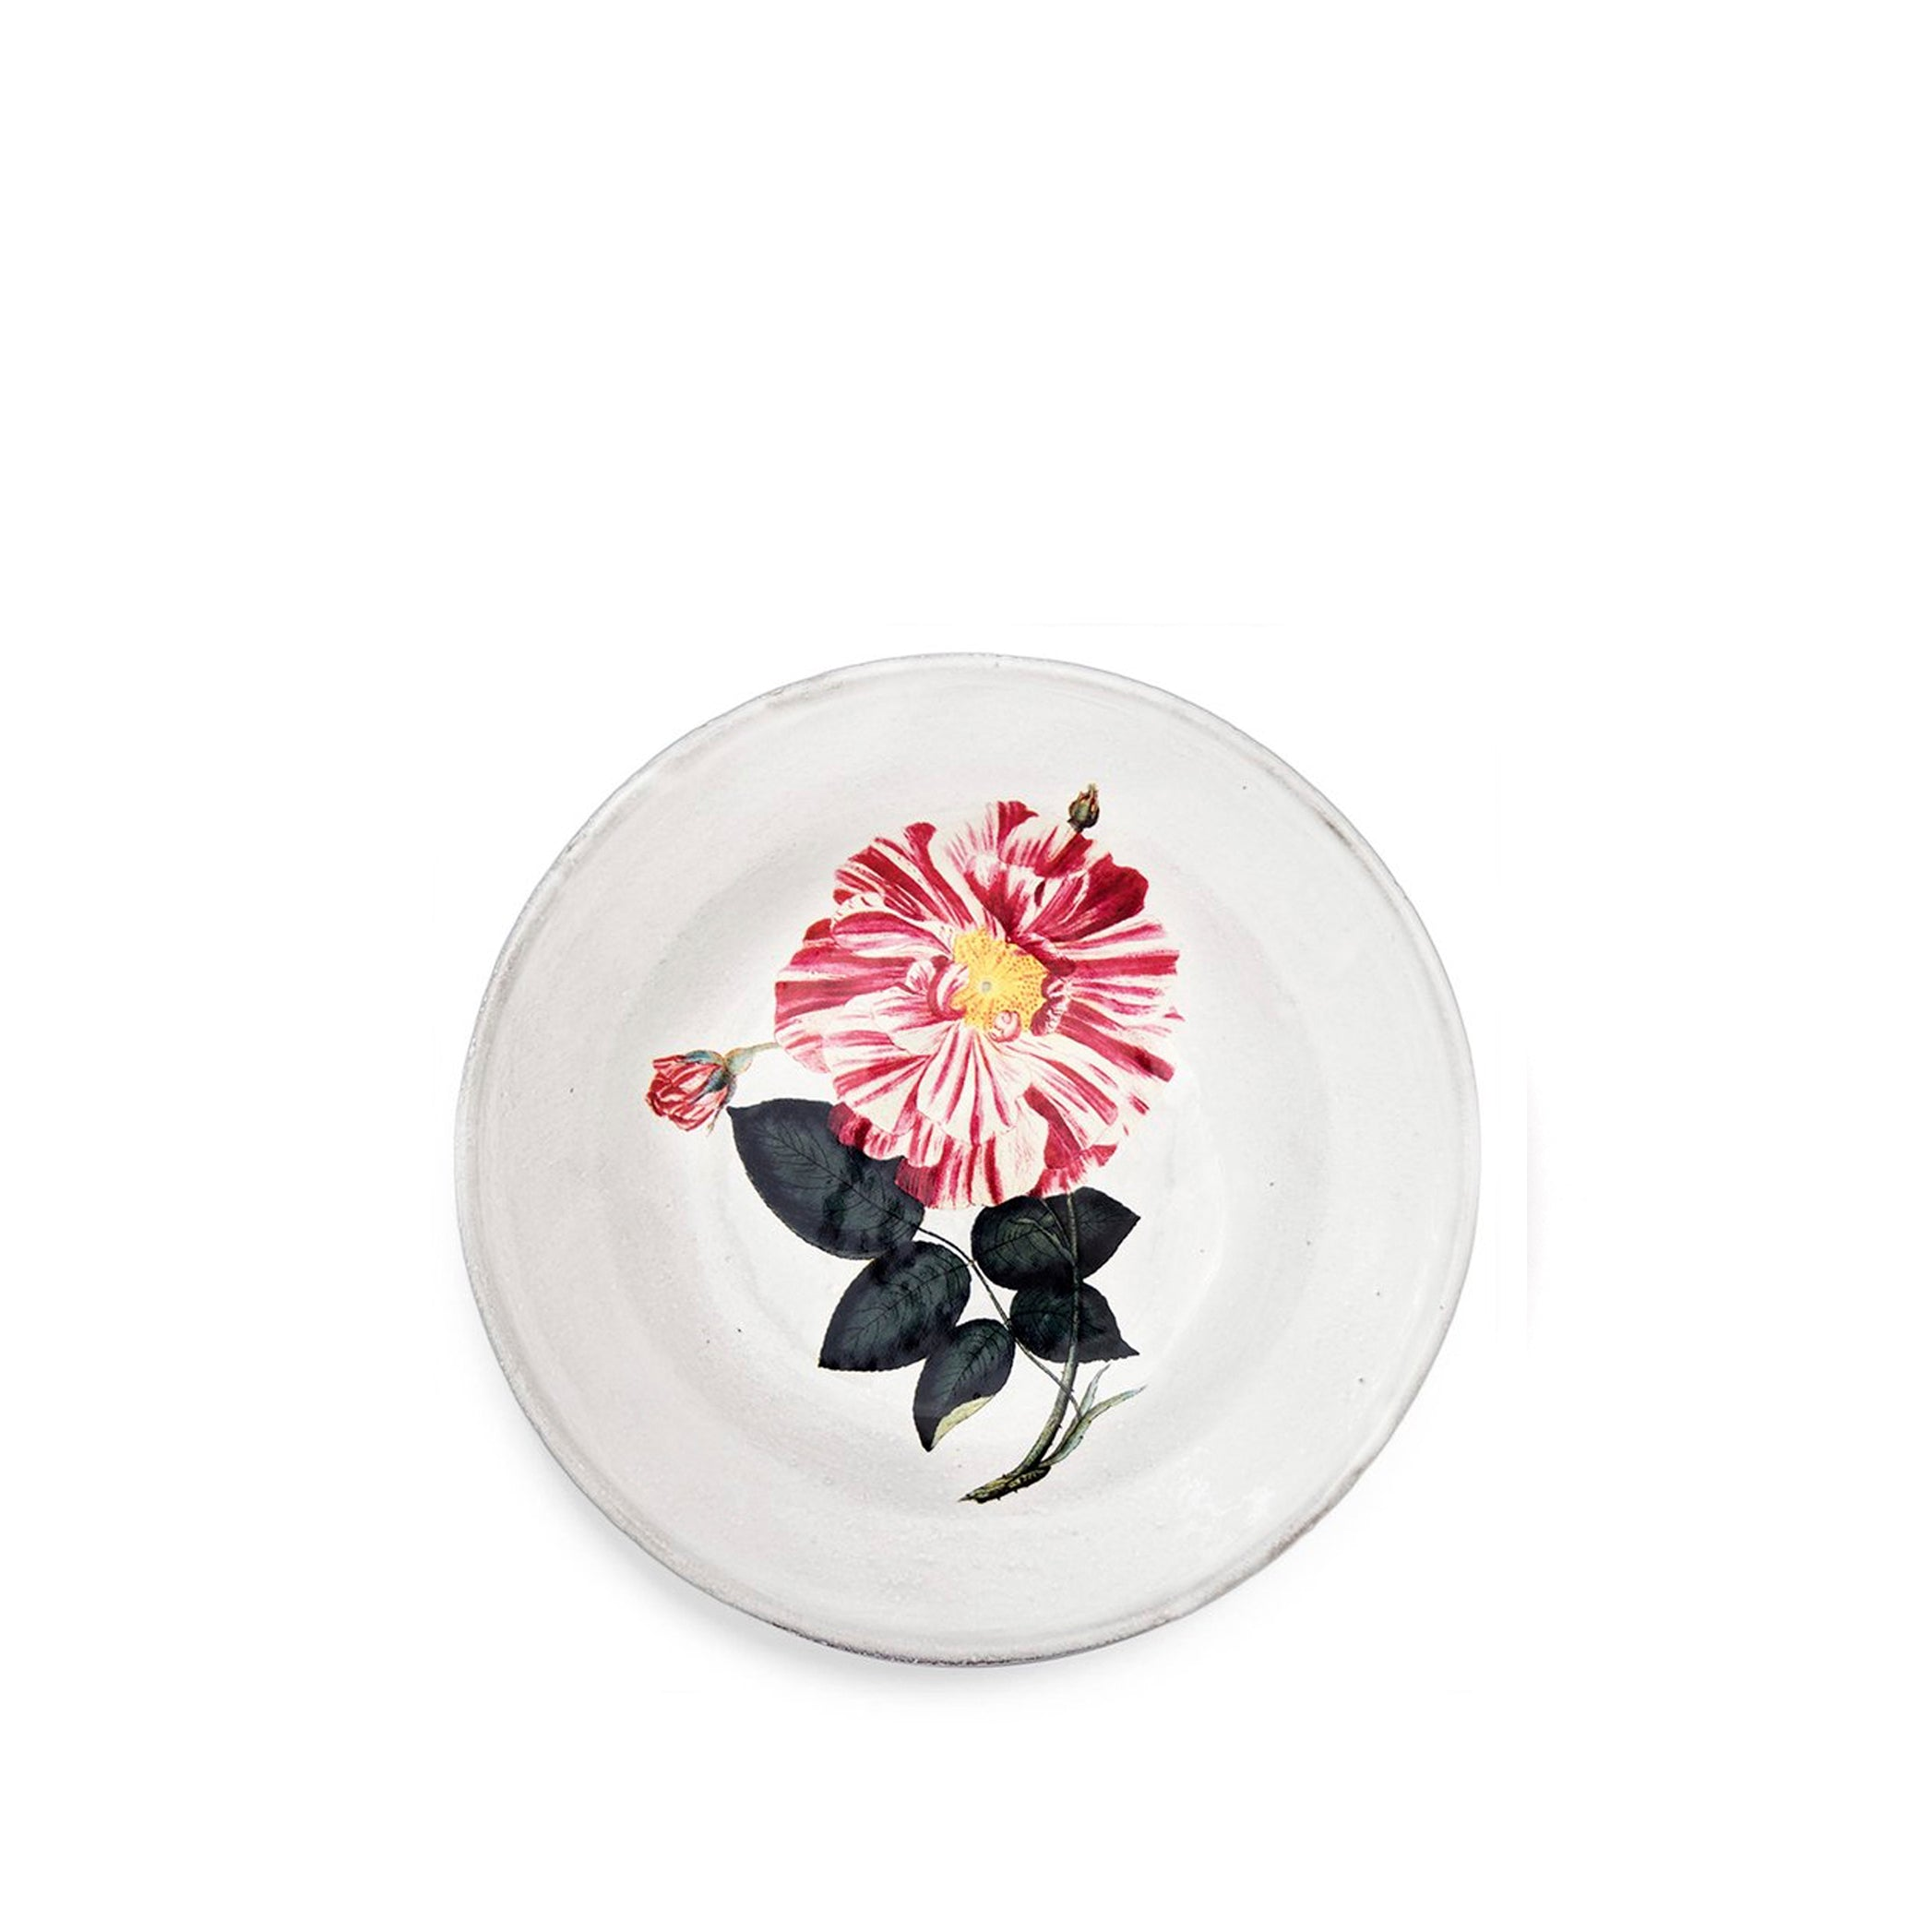 Rose Banco Deep Plate by Astier de Villatte